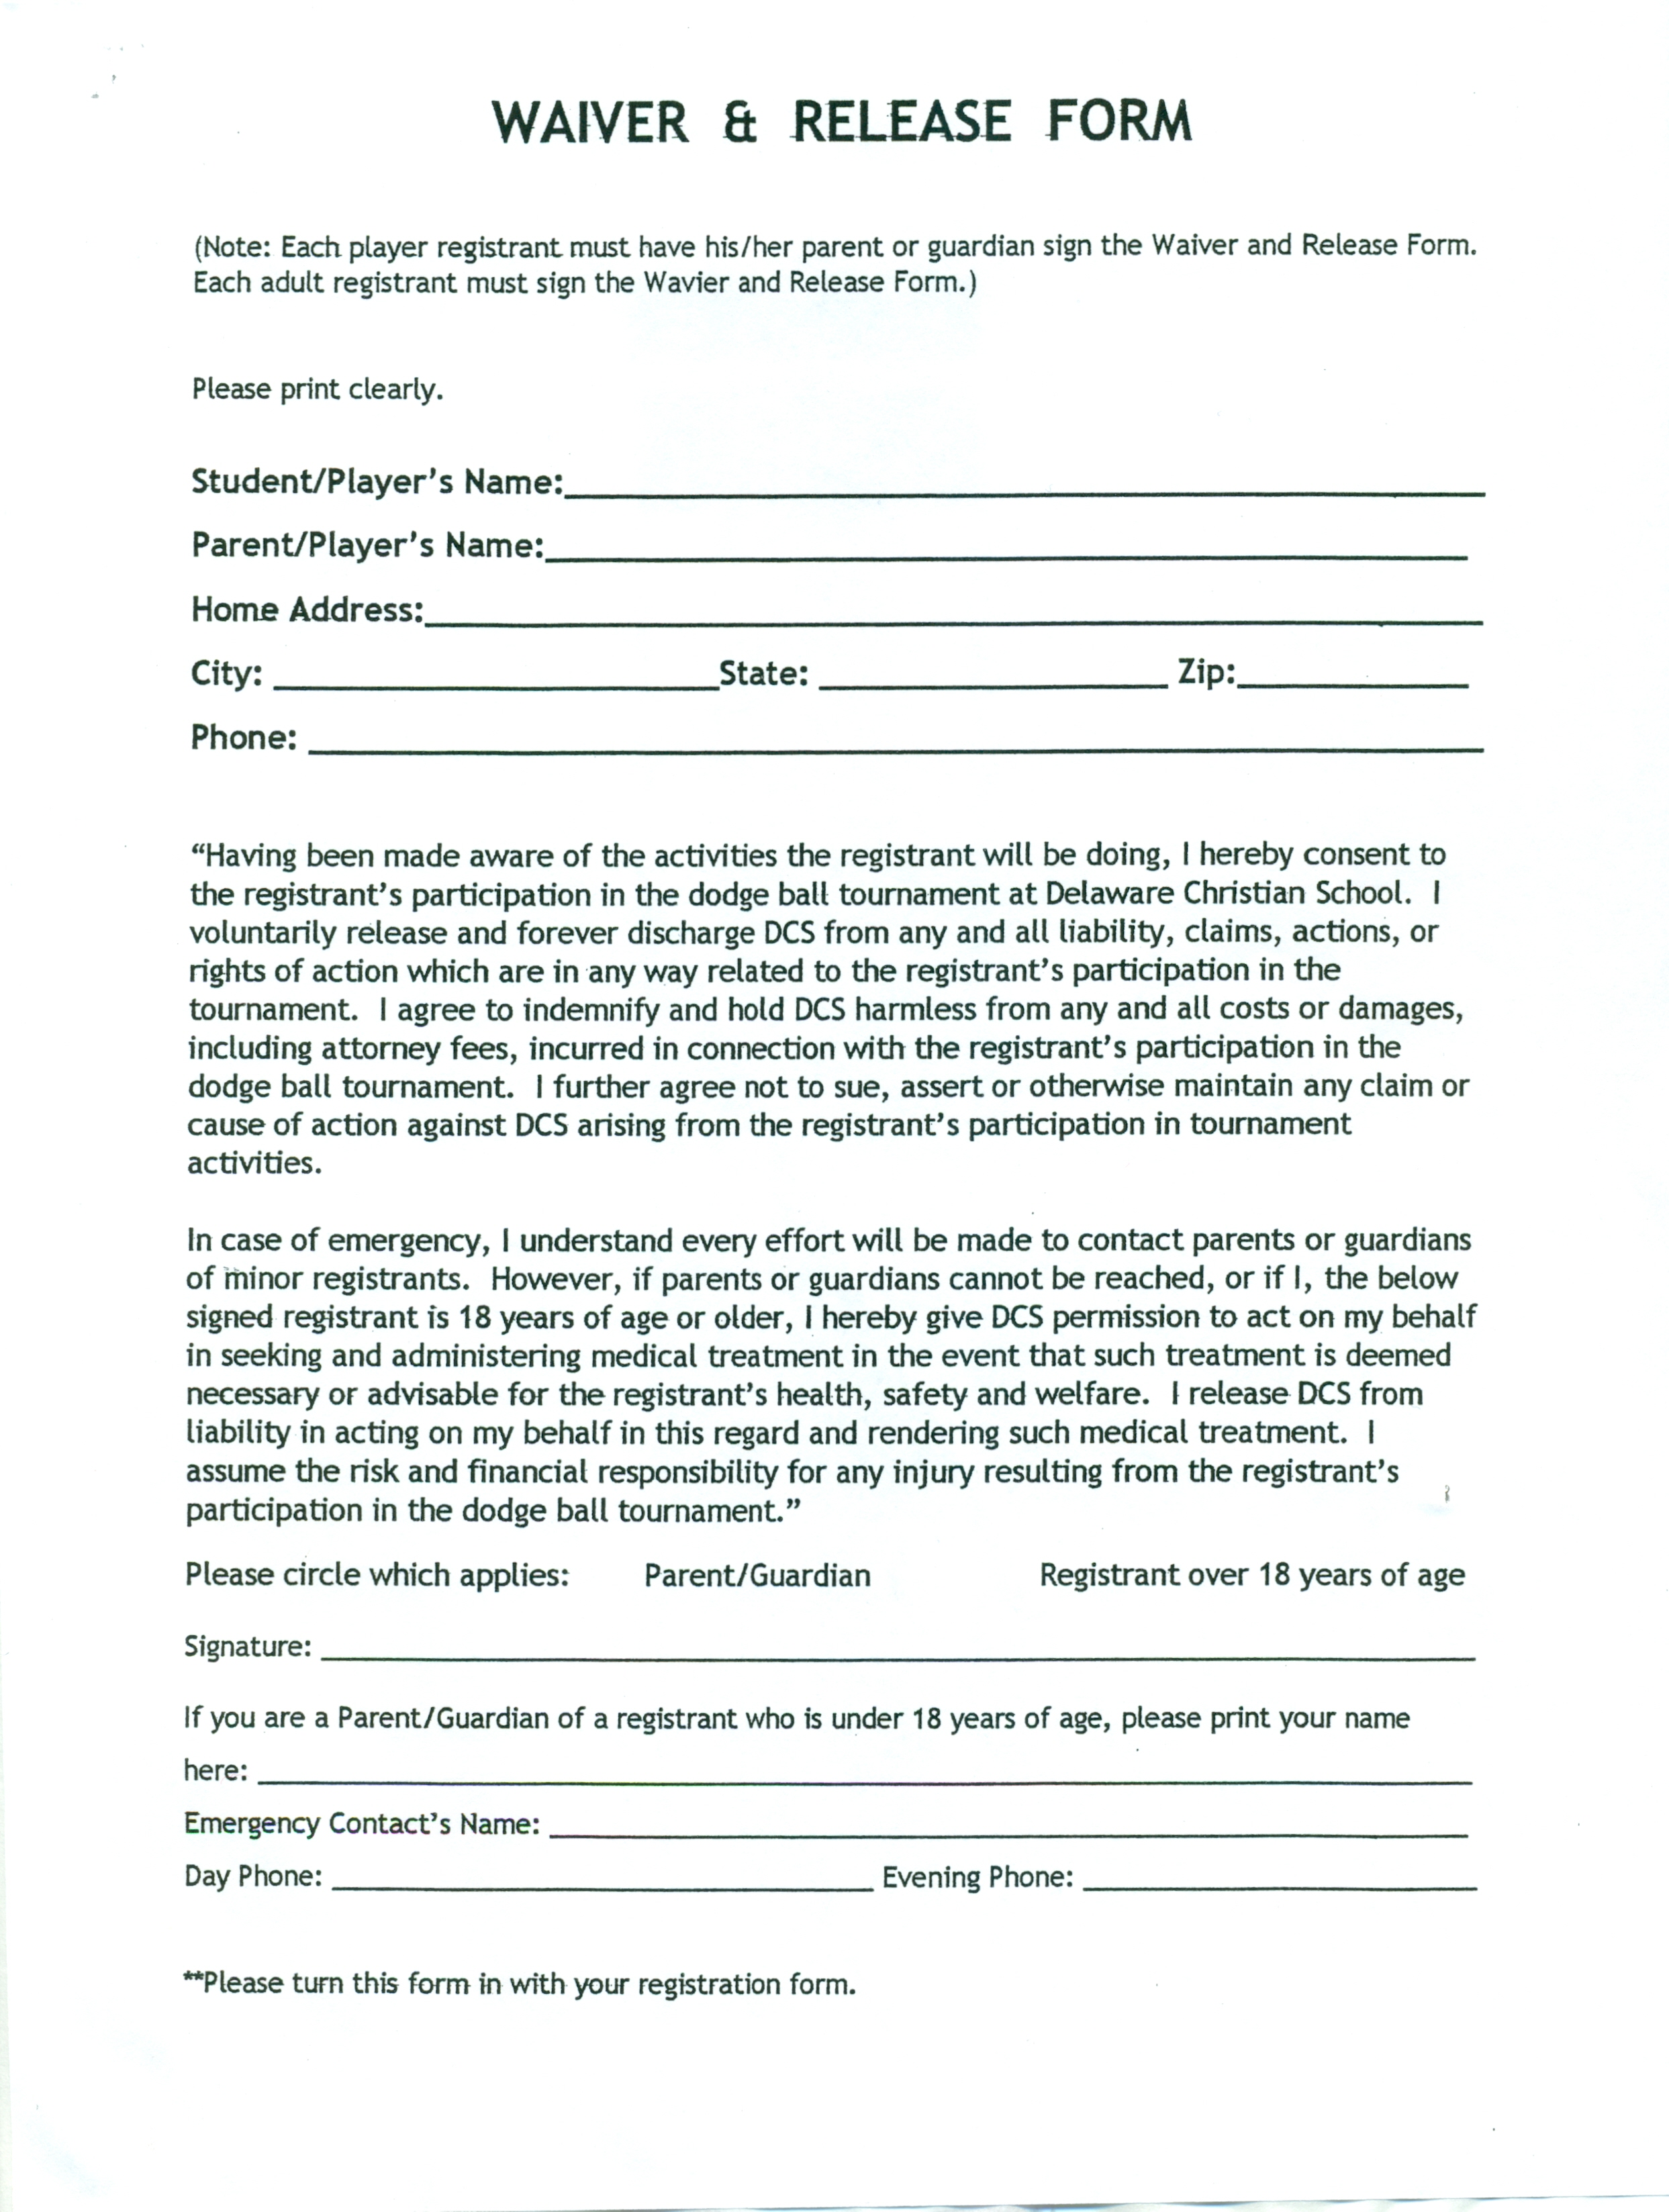 Release waiver template free printable documents for Photography waiver and release form template